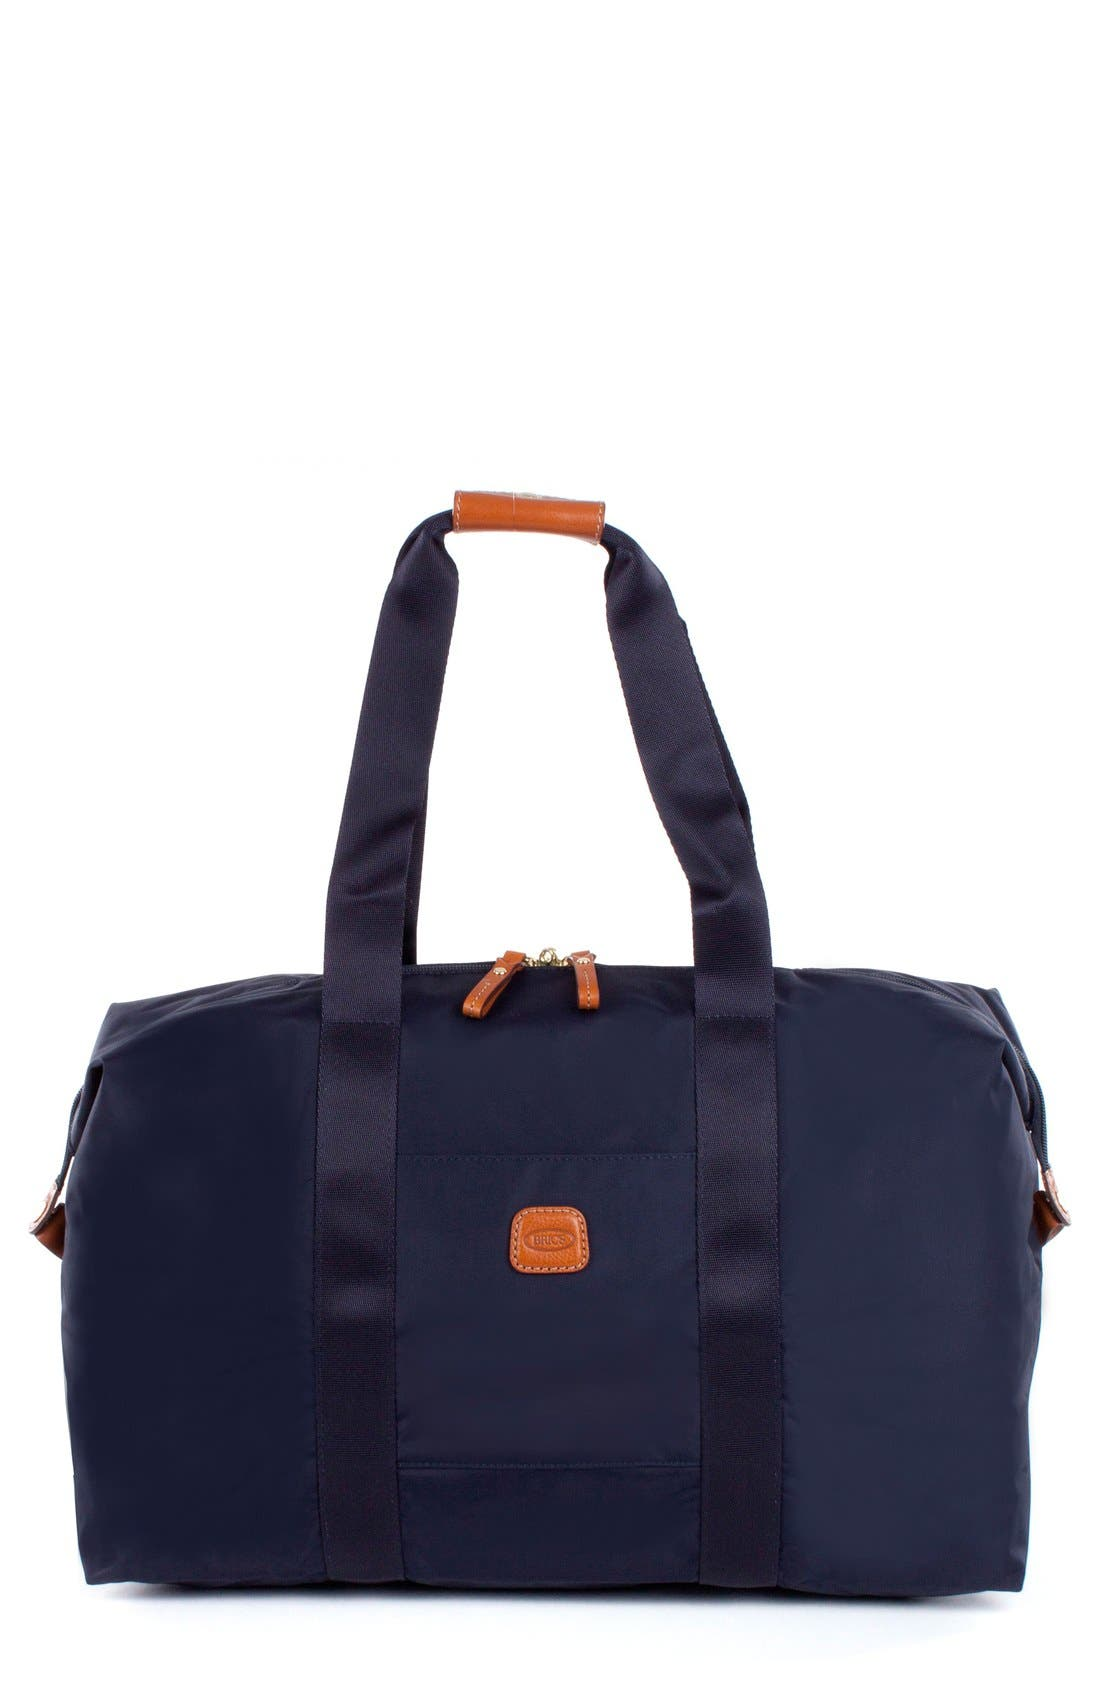 'X-Bag' Folding Duffel Bag,                             Main thumbnail 1, color,                             Navy